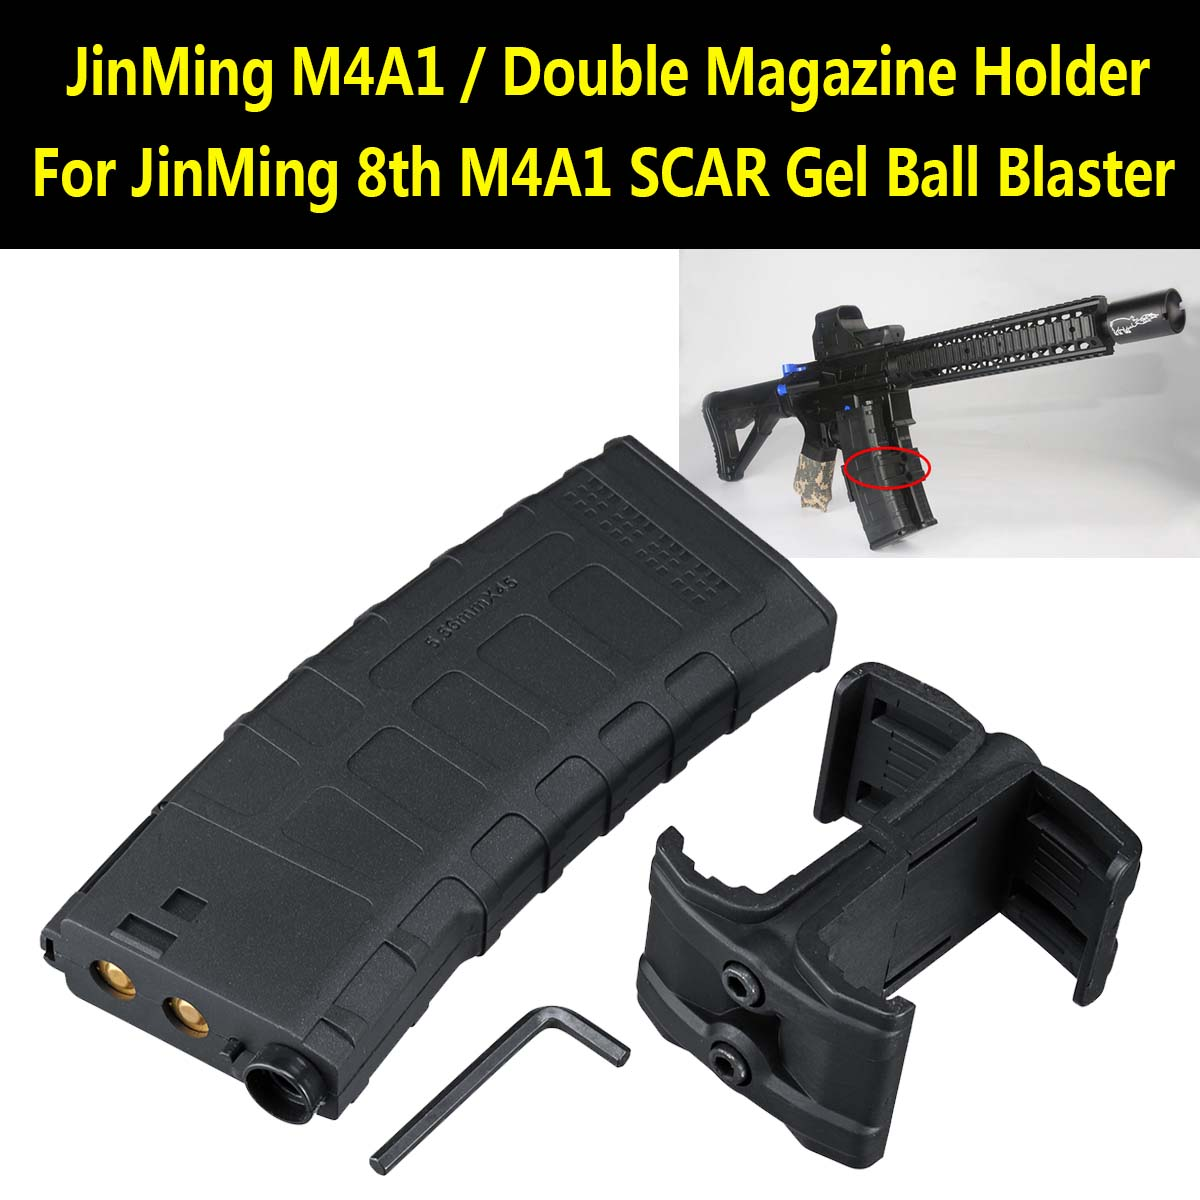 Magazine Clip with Double Mag Holder for JinMing 8th M4A1 Gel Ball Machine Replacement Accessories